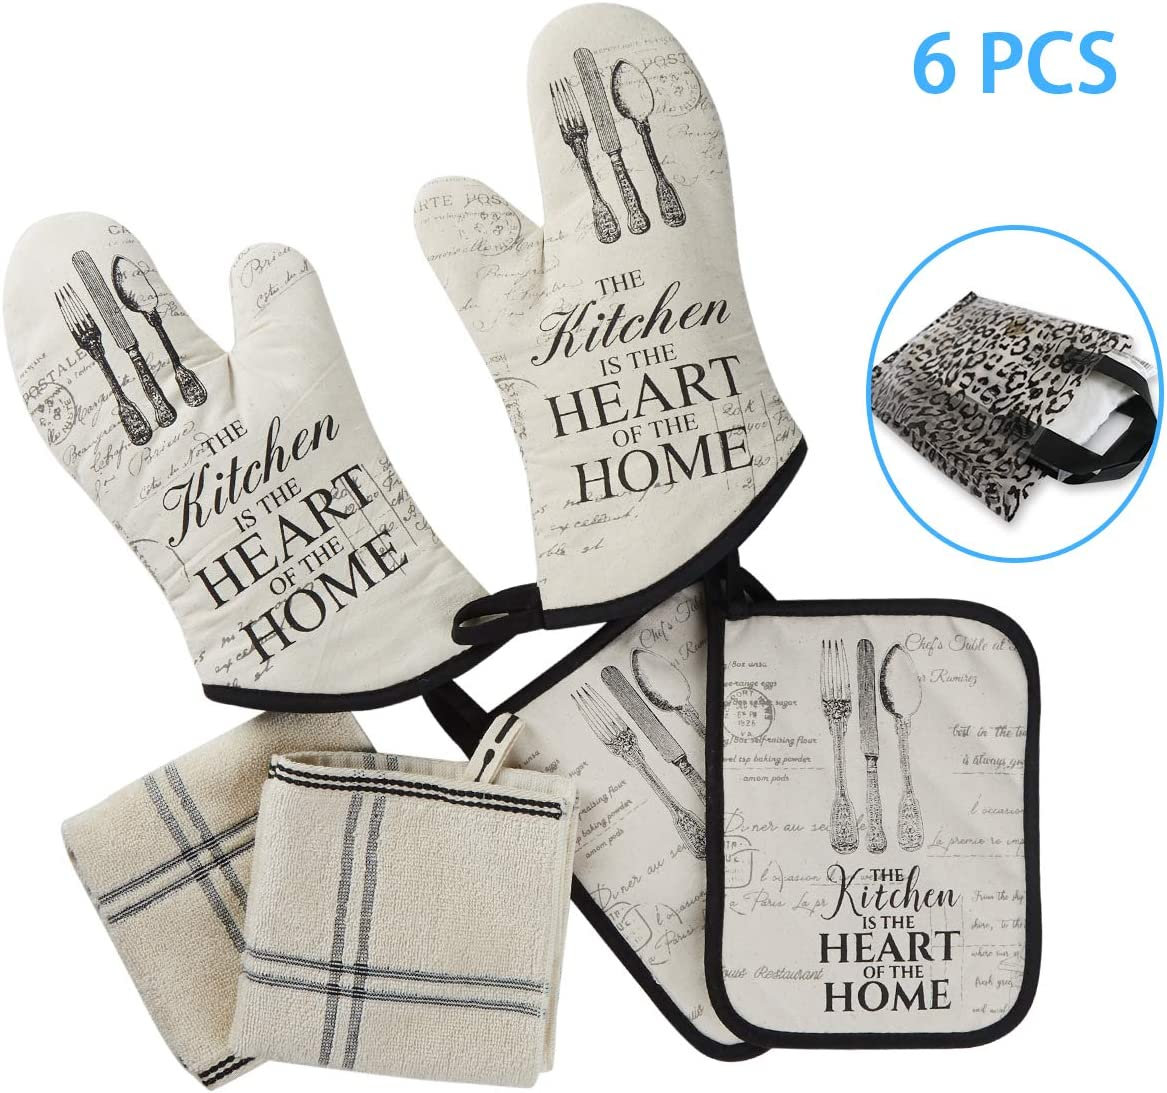 Warome Oven Mitts and Pot Holders Set&Kitchen Cotton Towels,Heat Resistant Glove(2pcs) with Kitchen Towels(2pcs)Soft Cotton Lining,Multi-function Pan Pad(2pcs),Surface for Cooking Backing BBQ Grilling